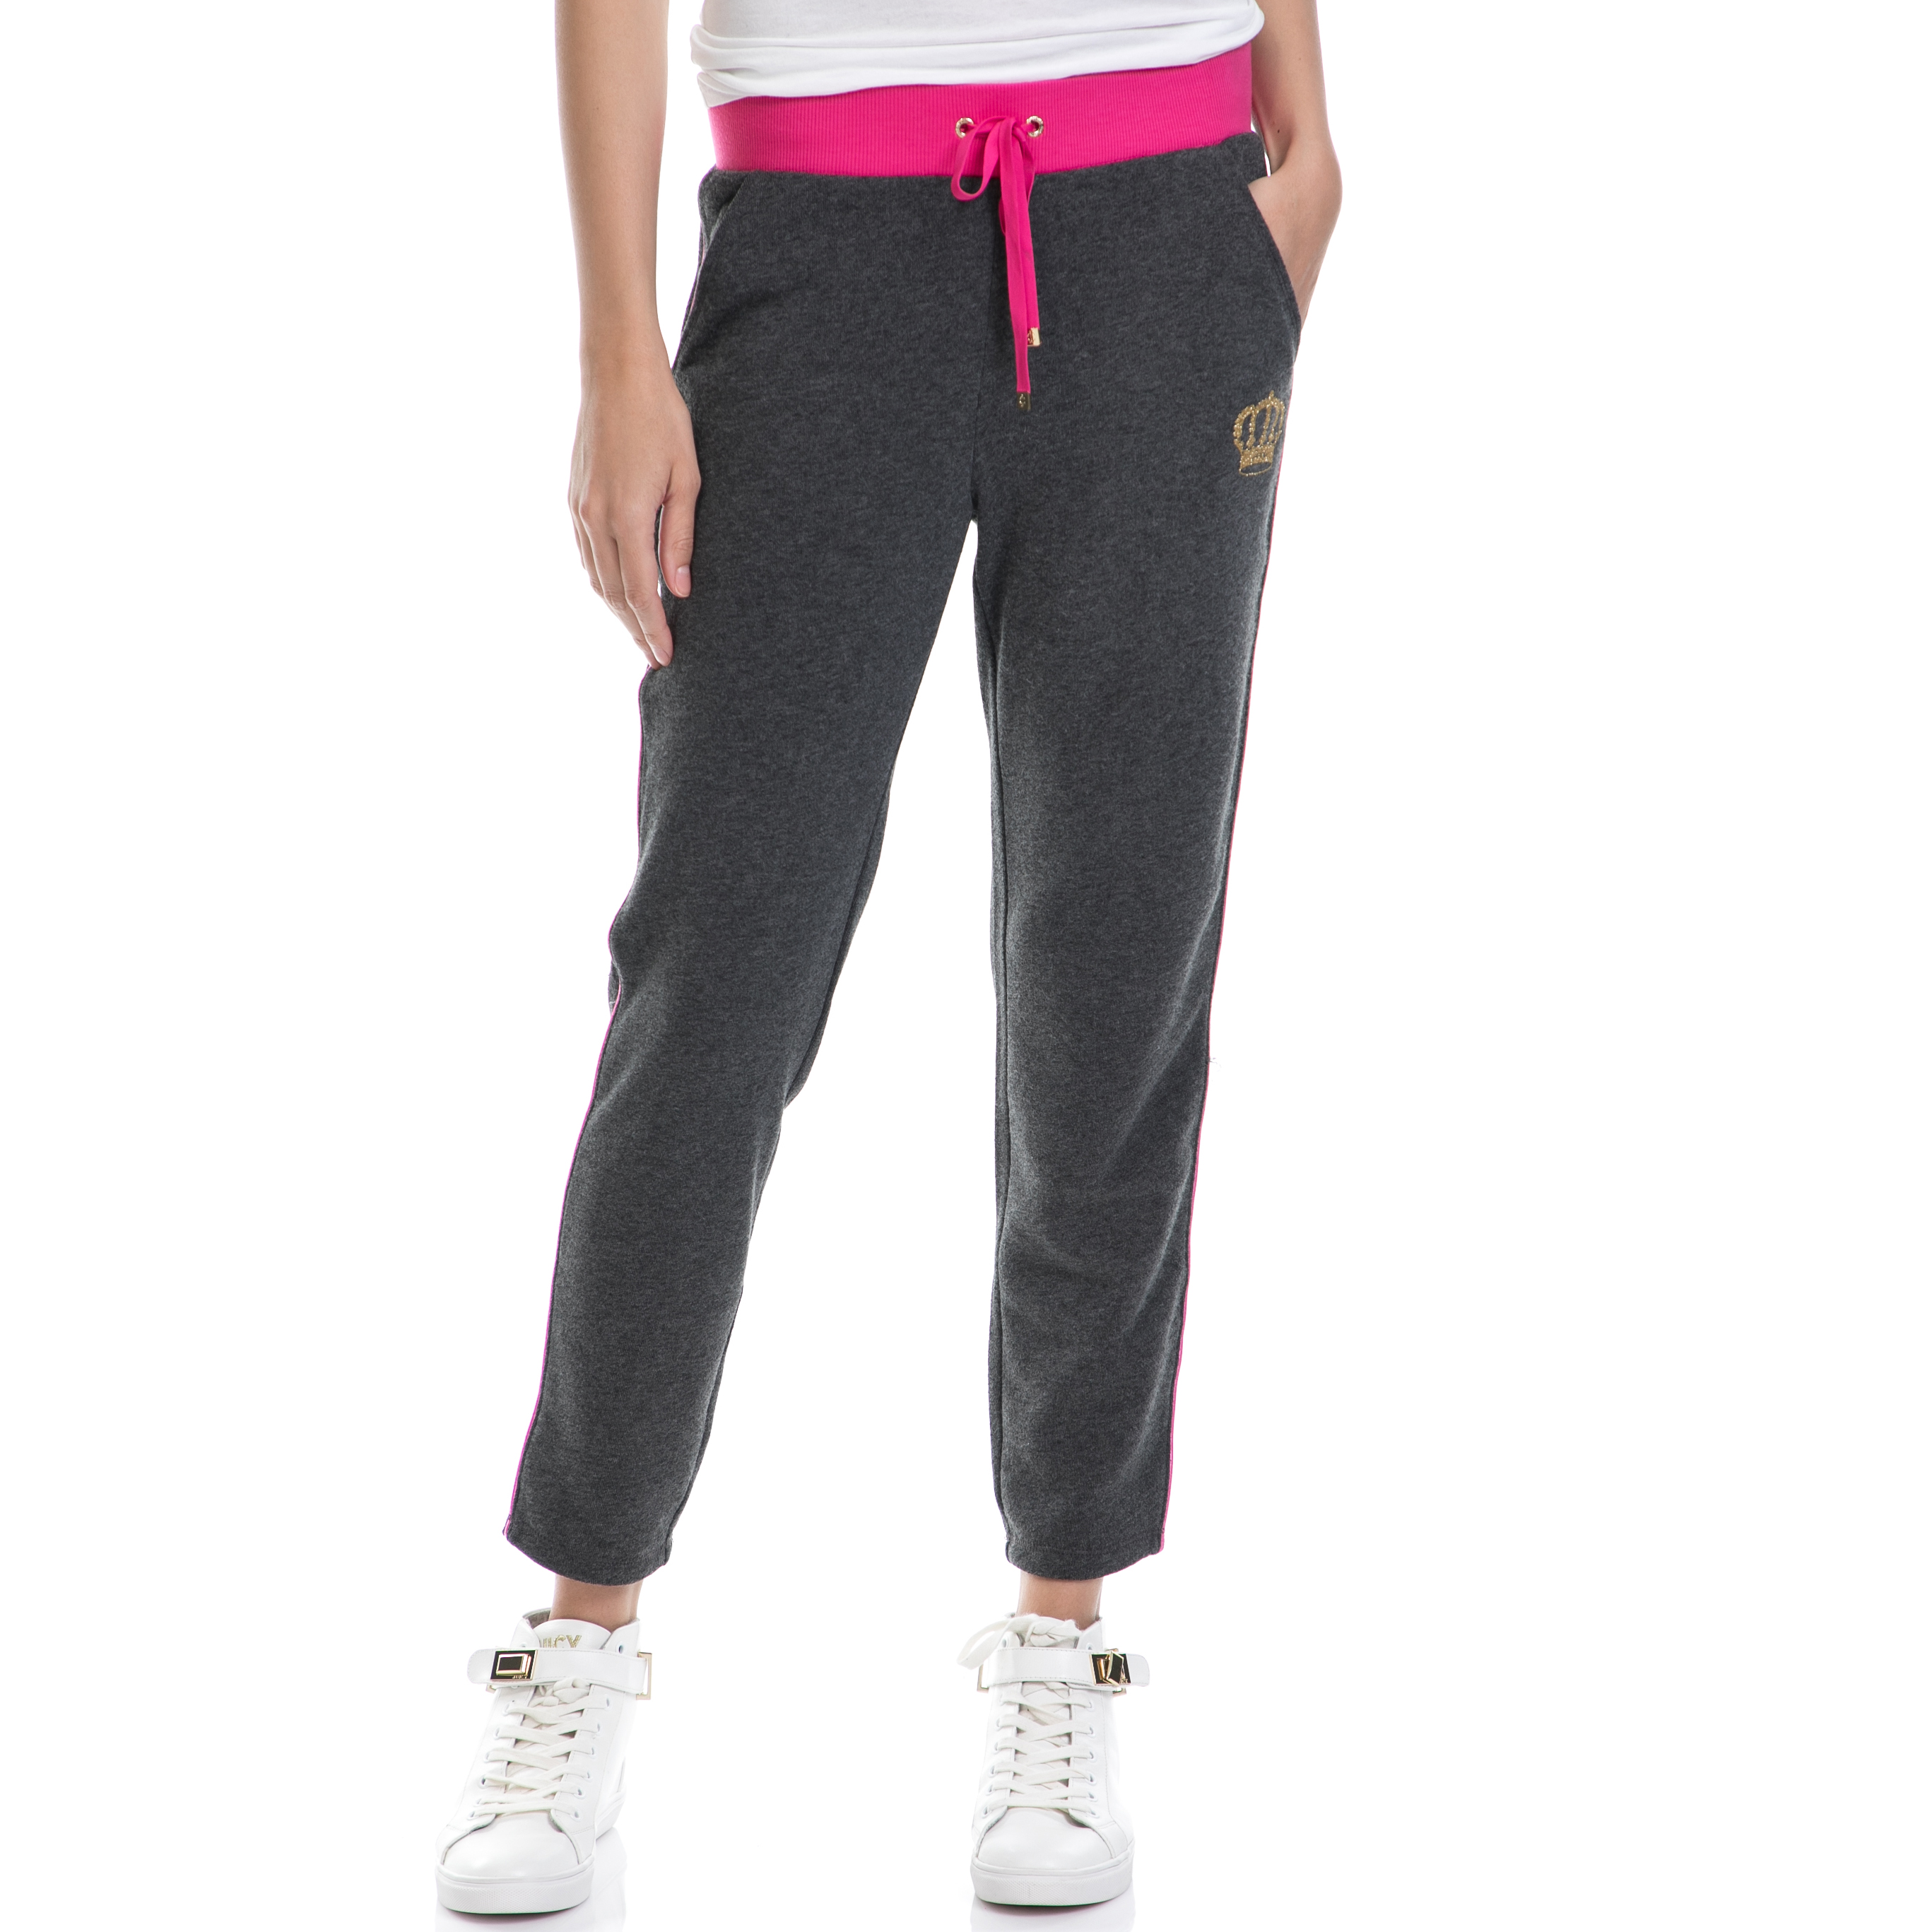 0d1bd9c4a5b3 CollectiveOnline JUICY COUTURE - Γυναικείο παντελόνι JUICY COUTURE γκρι